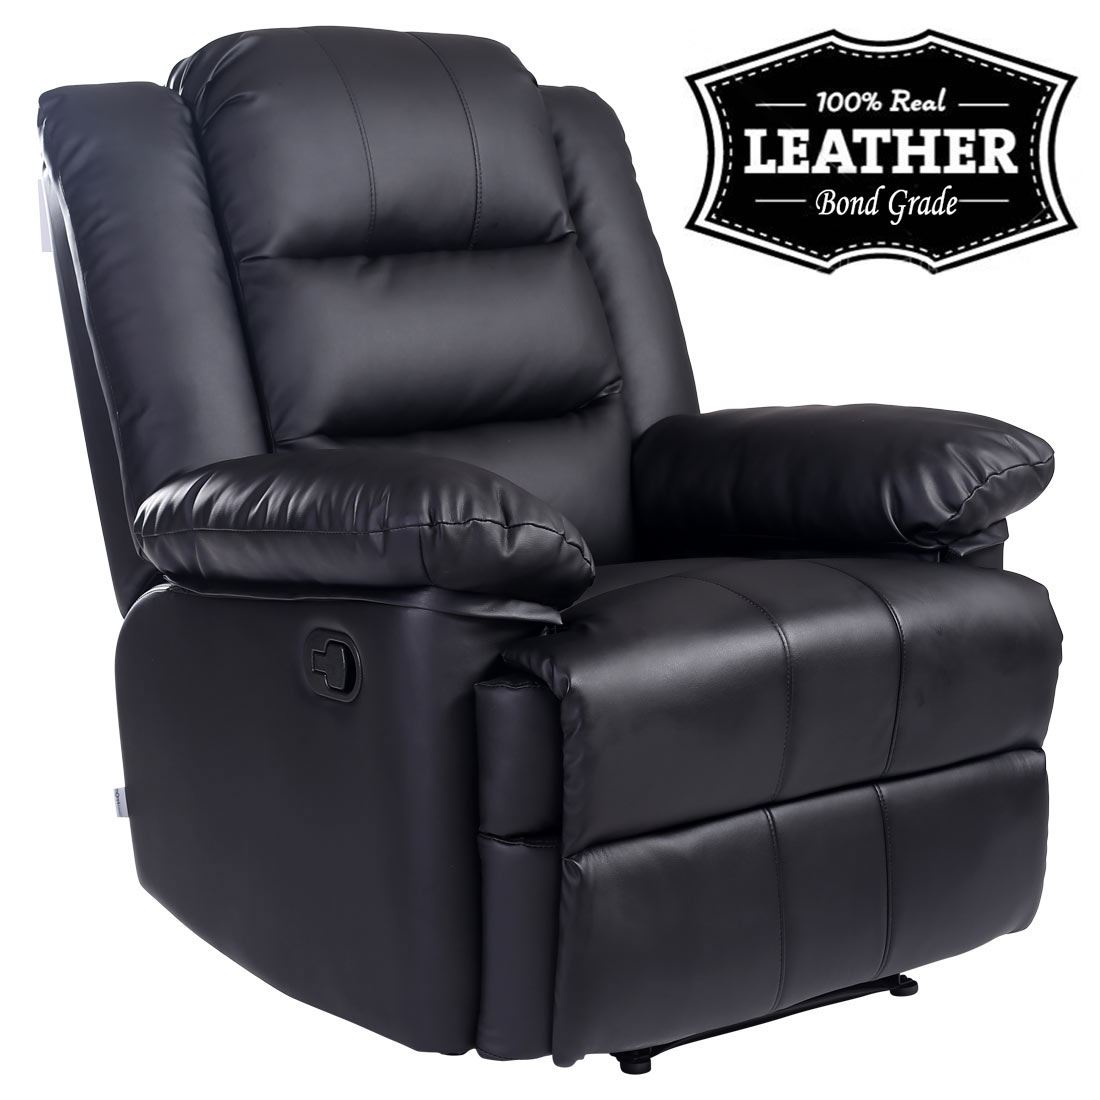 leather lounge armchair loxley leather recliner armchair sofa home lounge chair 16659 | 7e8a0dff 49d1 4647 b4f3 1287732ea3aa